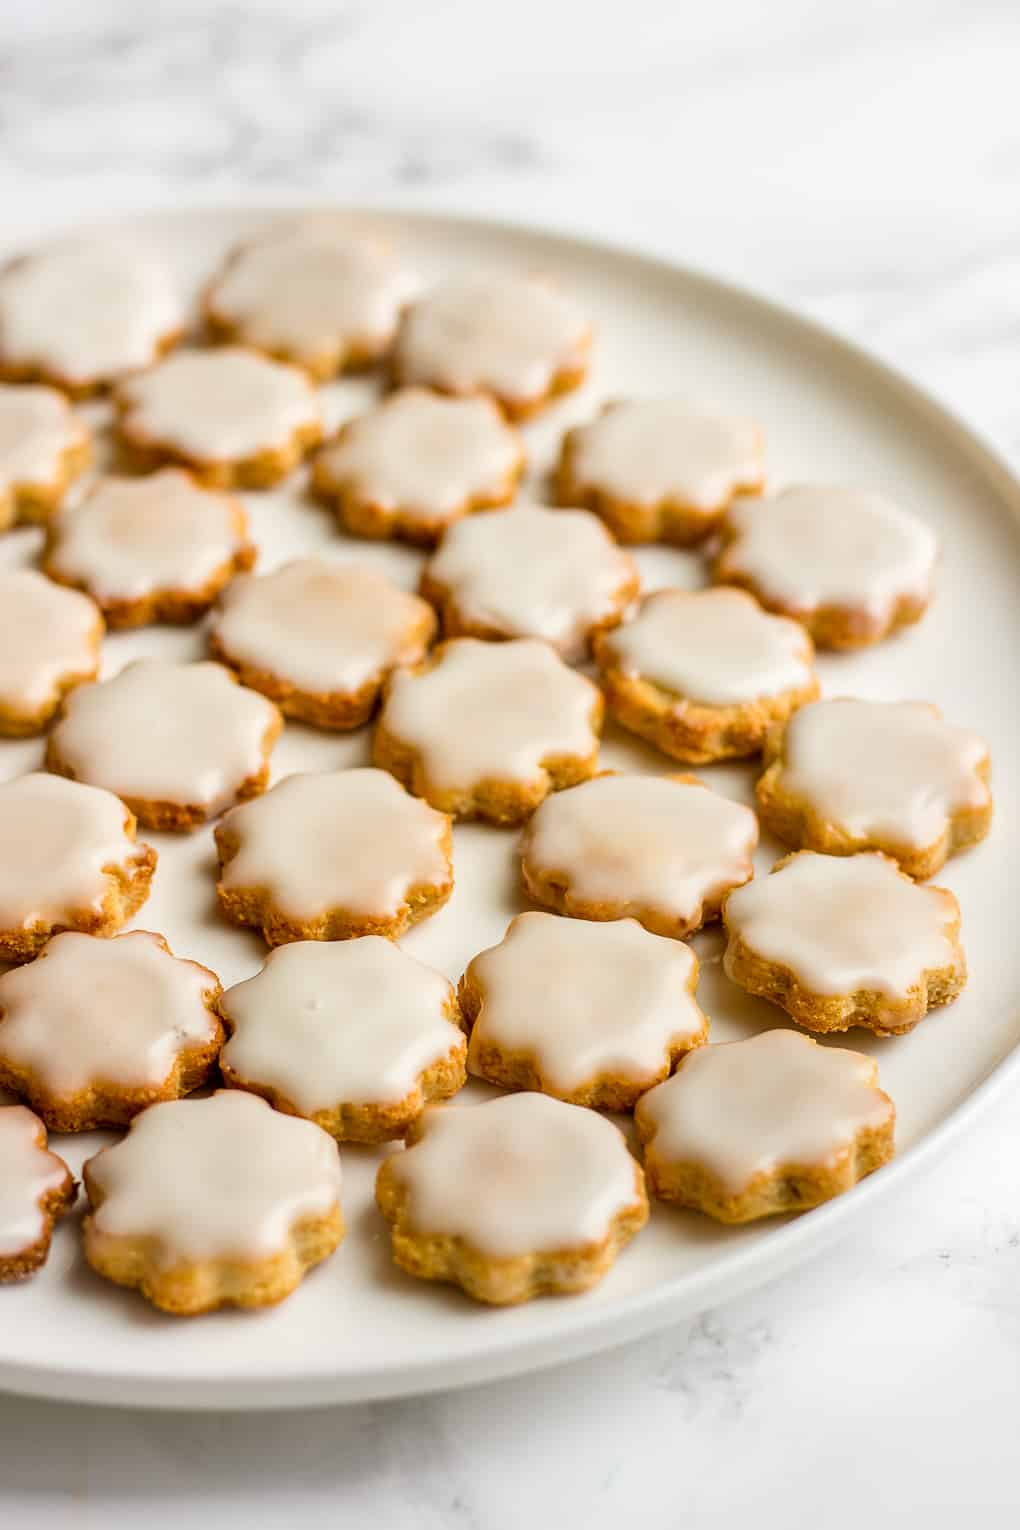 Almond Flour Cookies with Sugar Glaze on a plate